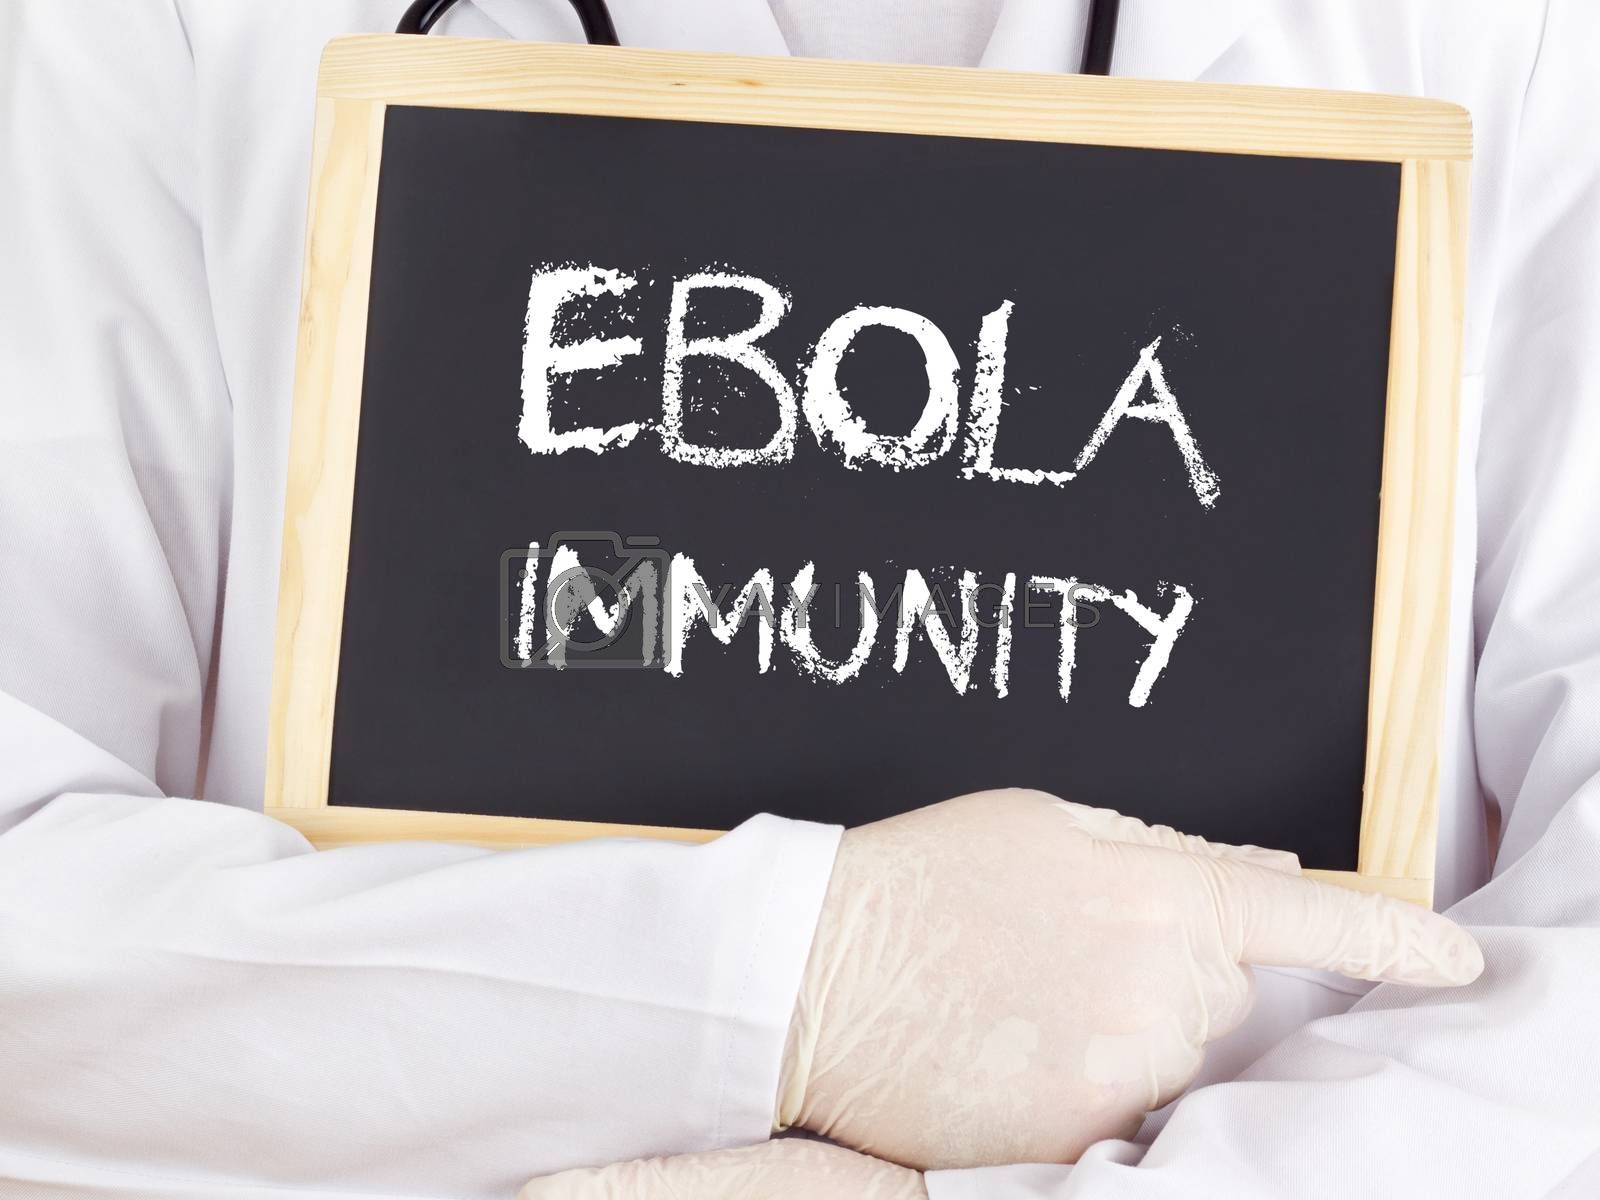 Doctor shows information: Ebola immunity